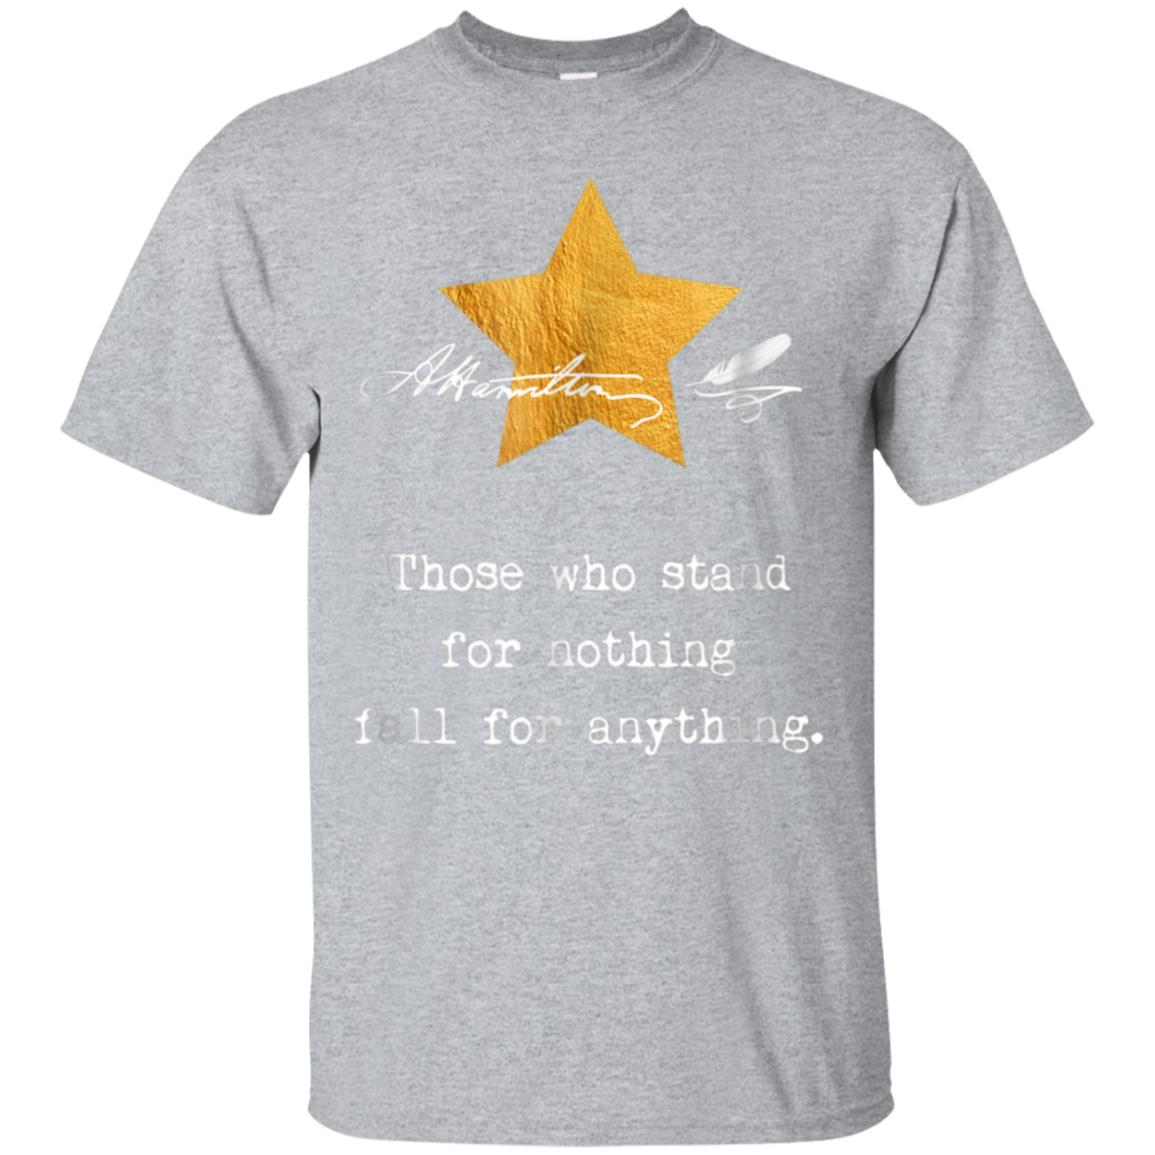 Alexander Hamilton. Those who stand for nothing. Tee 99promocode